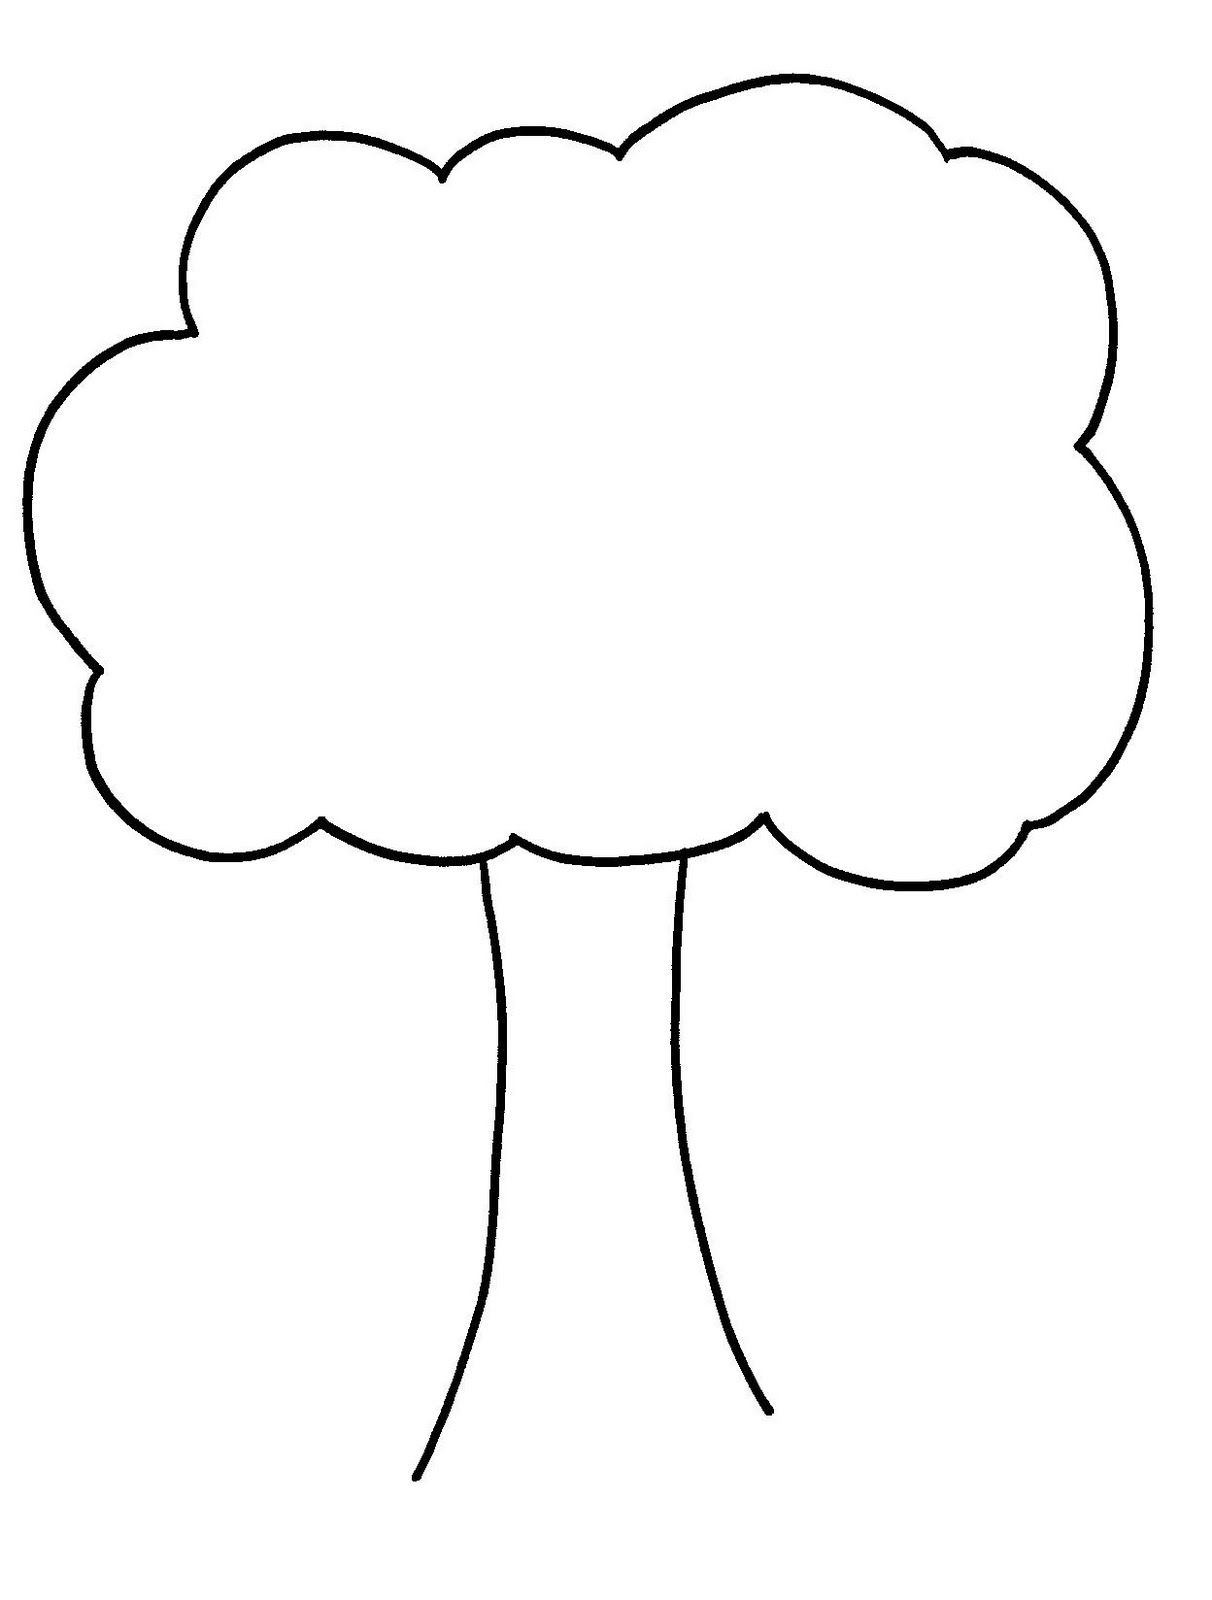 1212x1600 Outline Of Trees